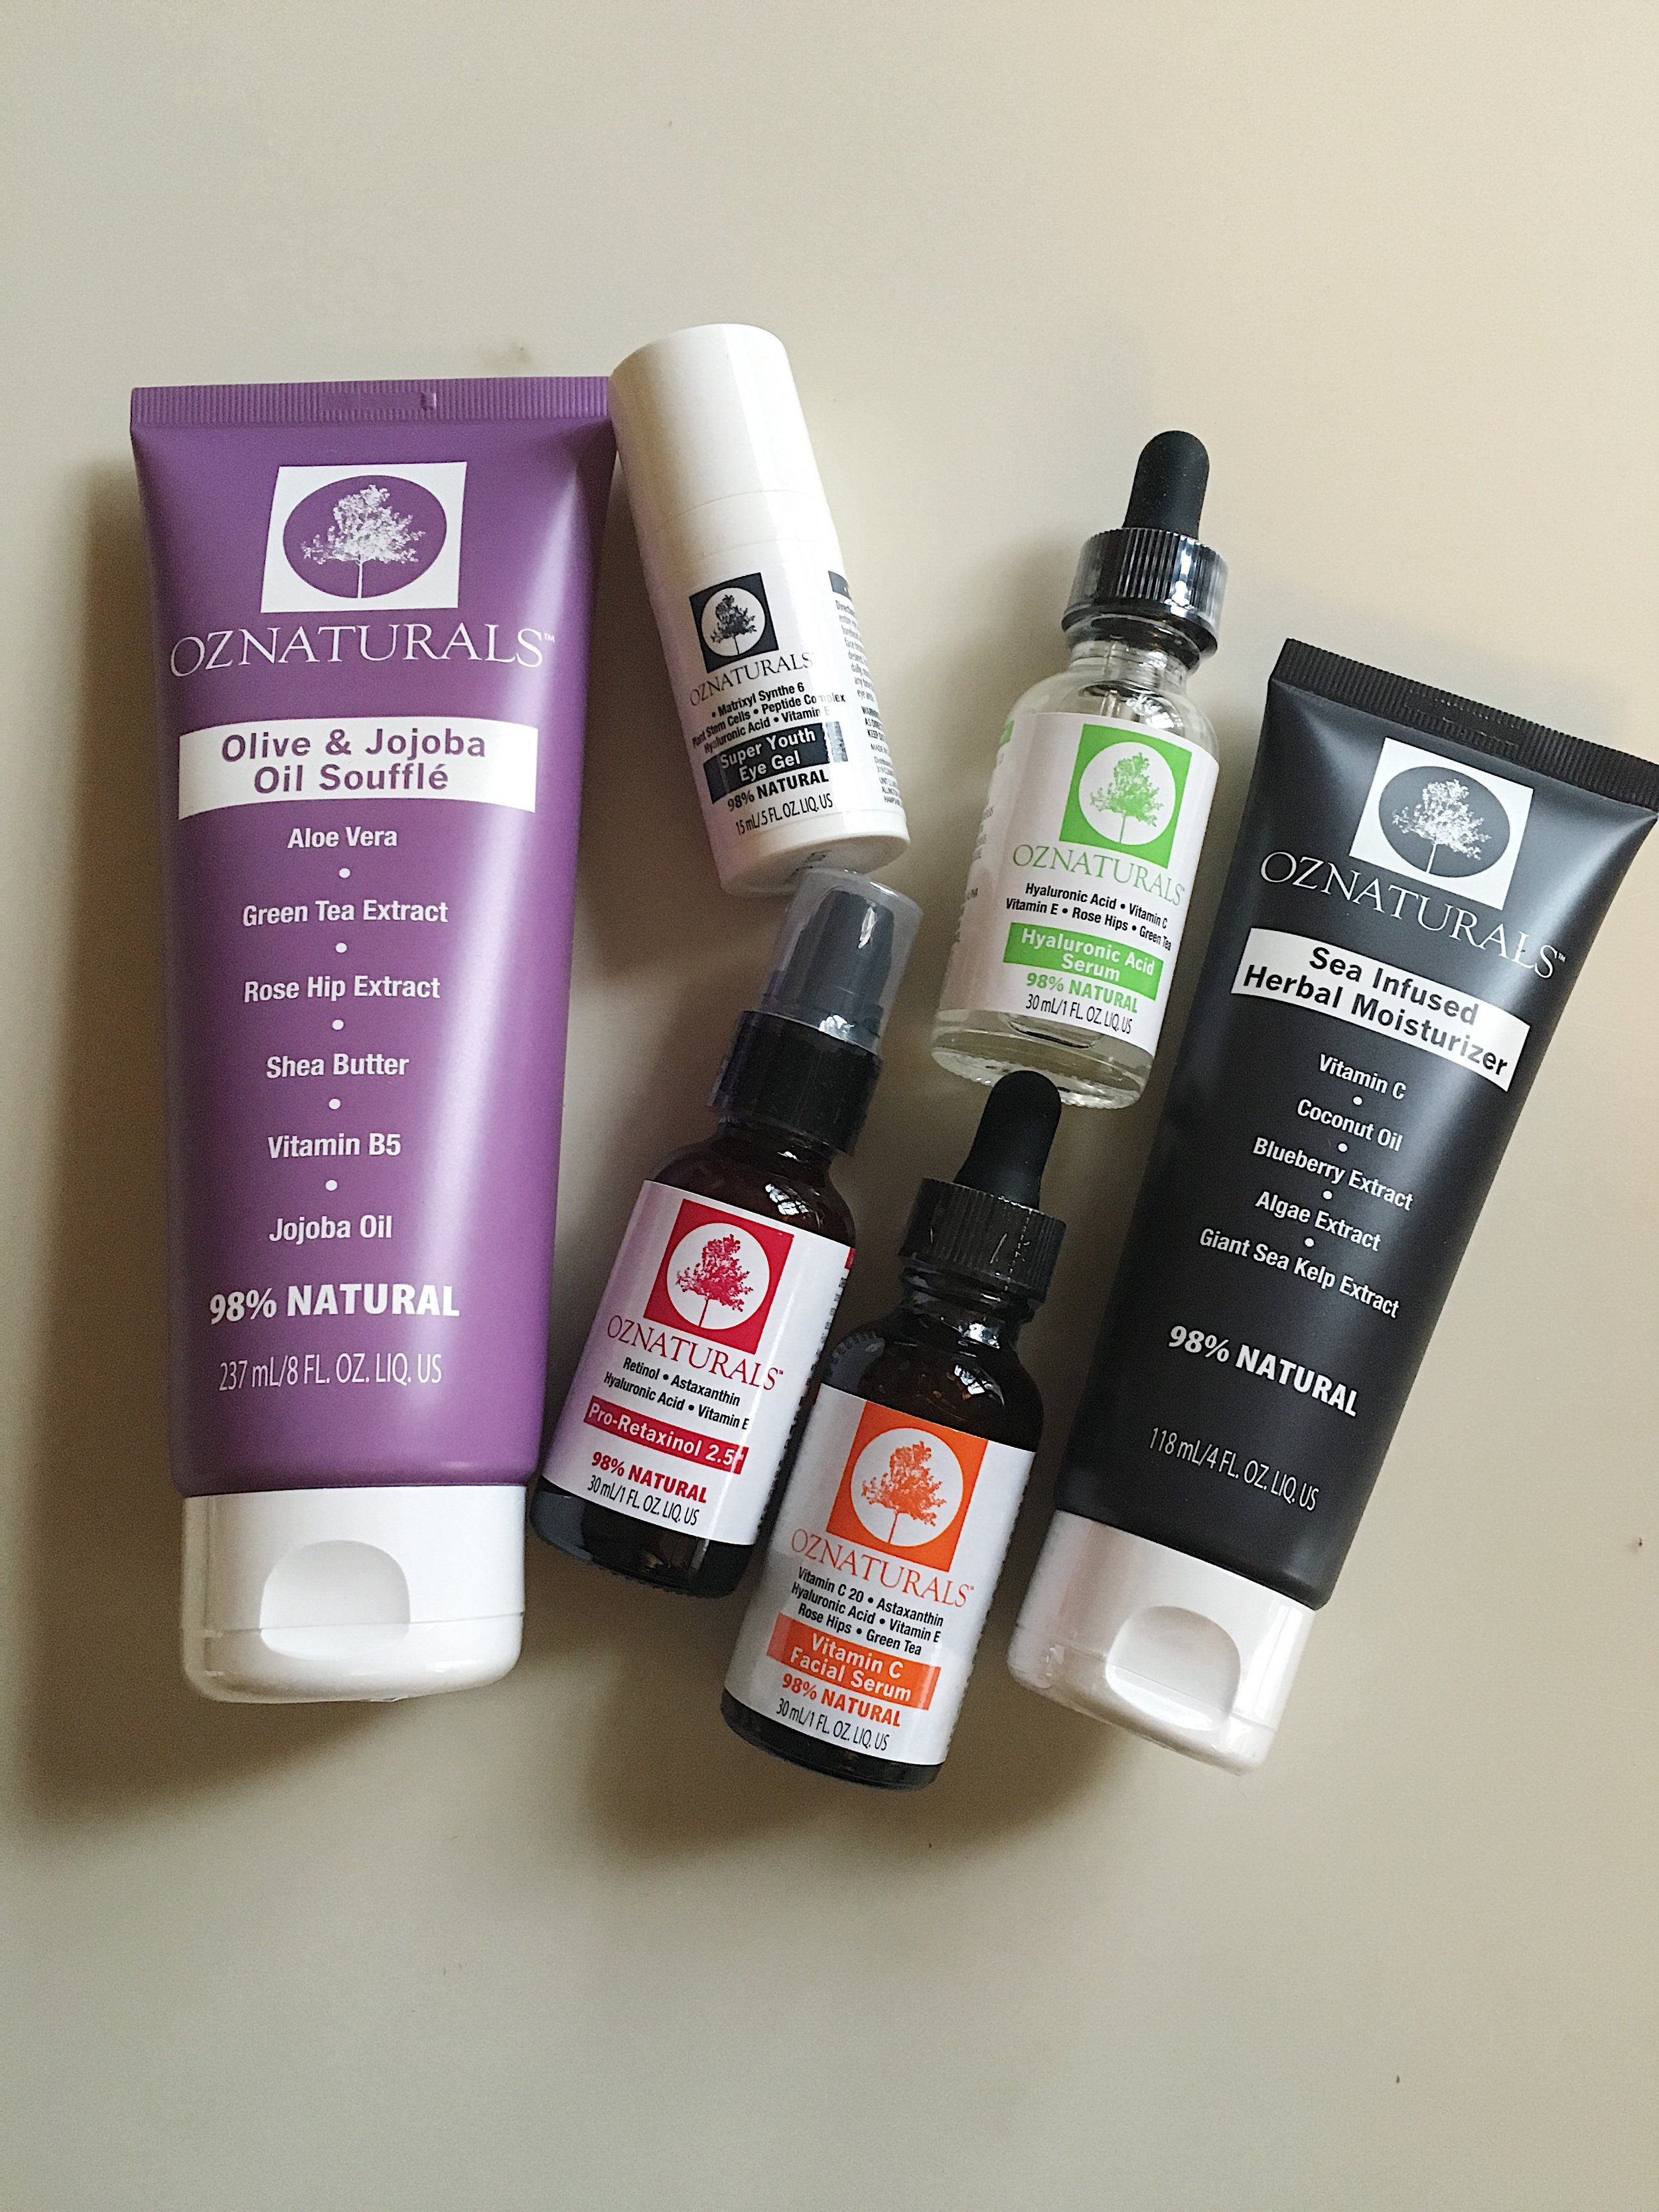 These are a few of my favorite things!   OZNaturals   has been my absolute favorite VEGAN skincare line for the past 3 years and I am always quick to recommend it to my clients, friends, and peers.  As a vegan myself for the past 15 years I always appreciate and love when brands cater and care so much as to make a product line animal friendly!  I have yet to try a product I didn't like which I feel is pretty rare when it comes to skincare. Check out their full line of products (which are always affordable I might add!) and get some for yourself! A skincare line that is vegan and cruelty-free just like my lifestyle is a beauty match made in heaven :)   Pictured from Left:    Olive & Jojoba Oil Souffle  ,   Super Youth Eye Gel  ,   Hyaluronic Acid Serum  ,   Sea Infused Herbal Moisturizer  ,   Vitamin C Facial Serum  , and   Pro-Retinol  ,